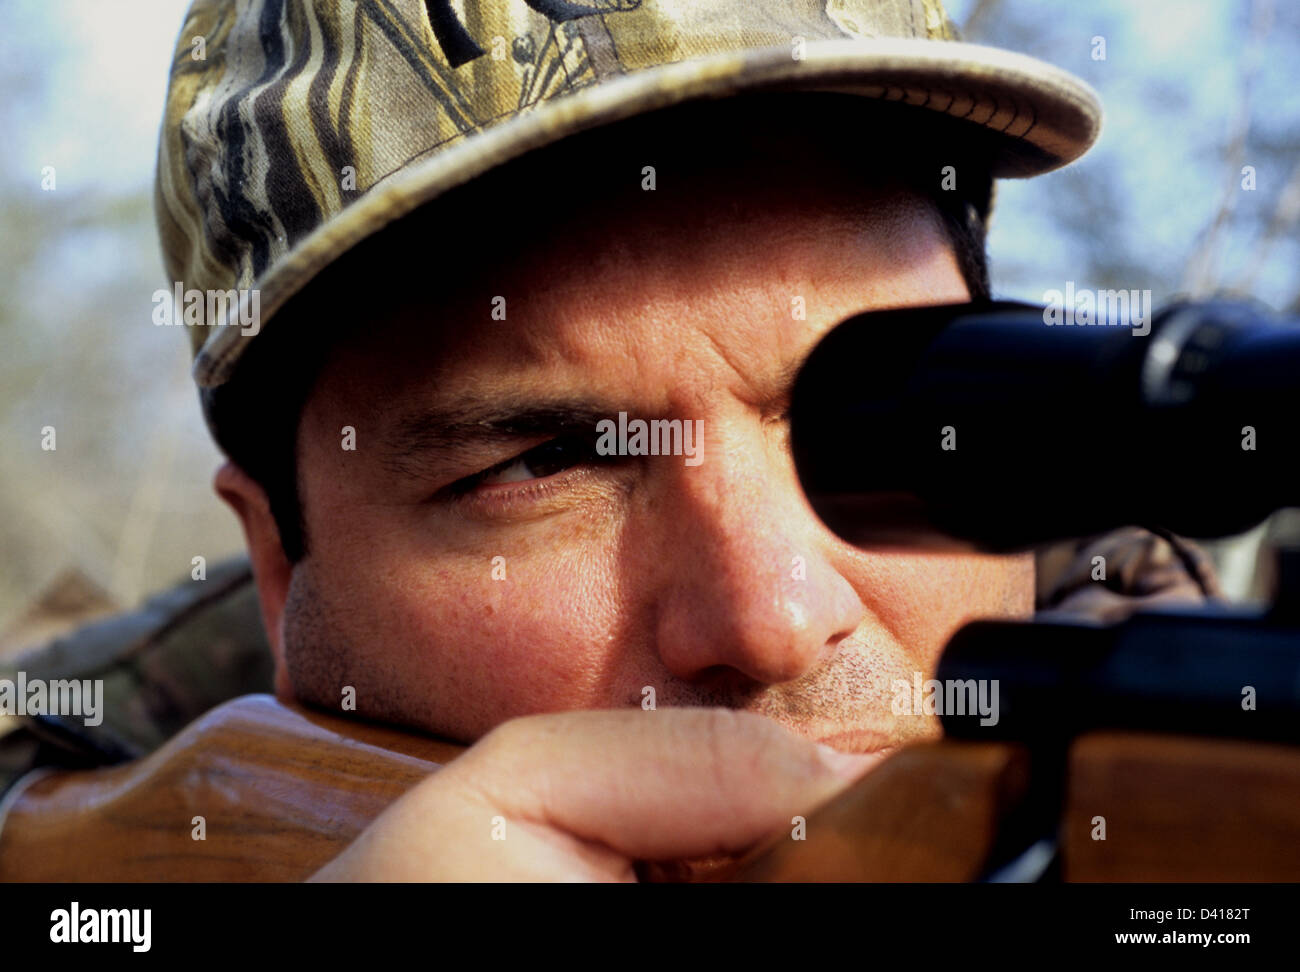 A South Texas deer hunter looking through his scope and aiming a rifle - Stock Image